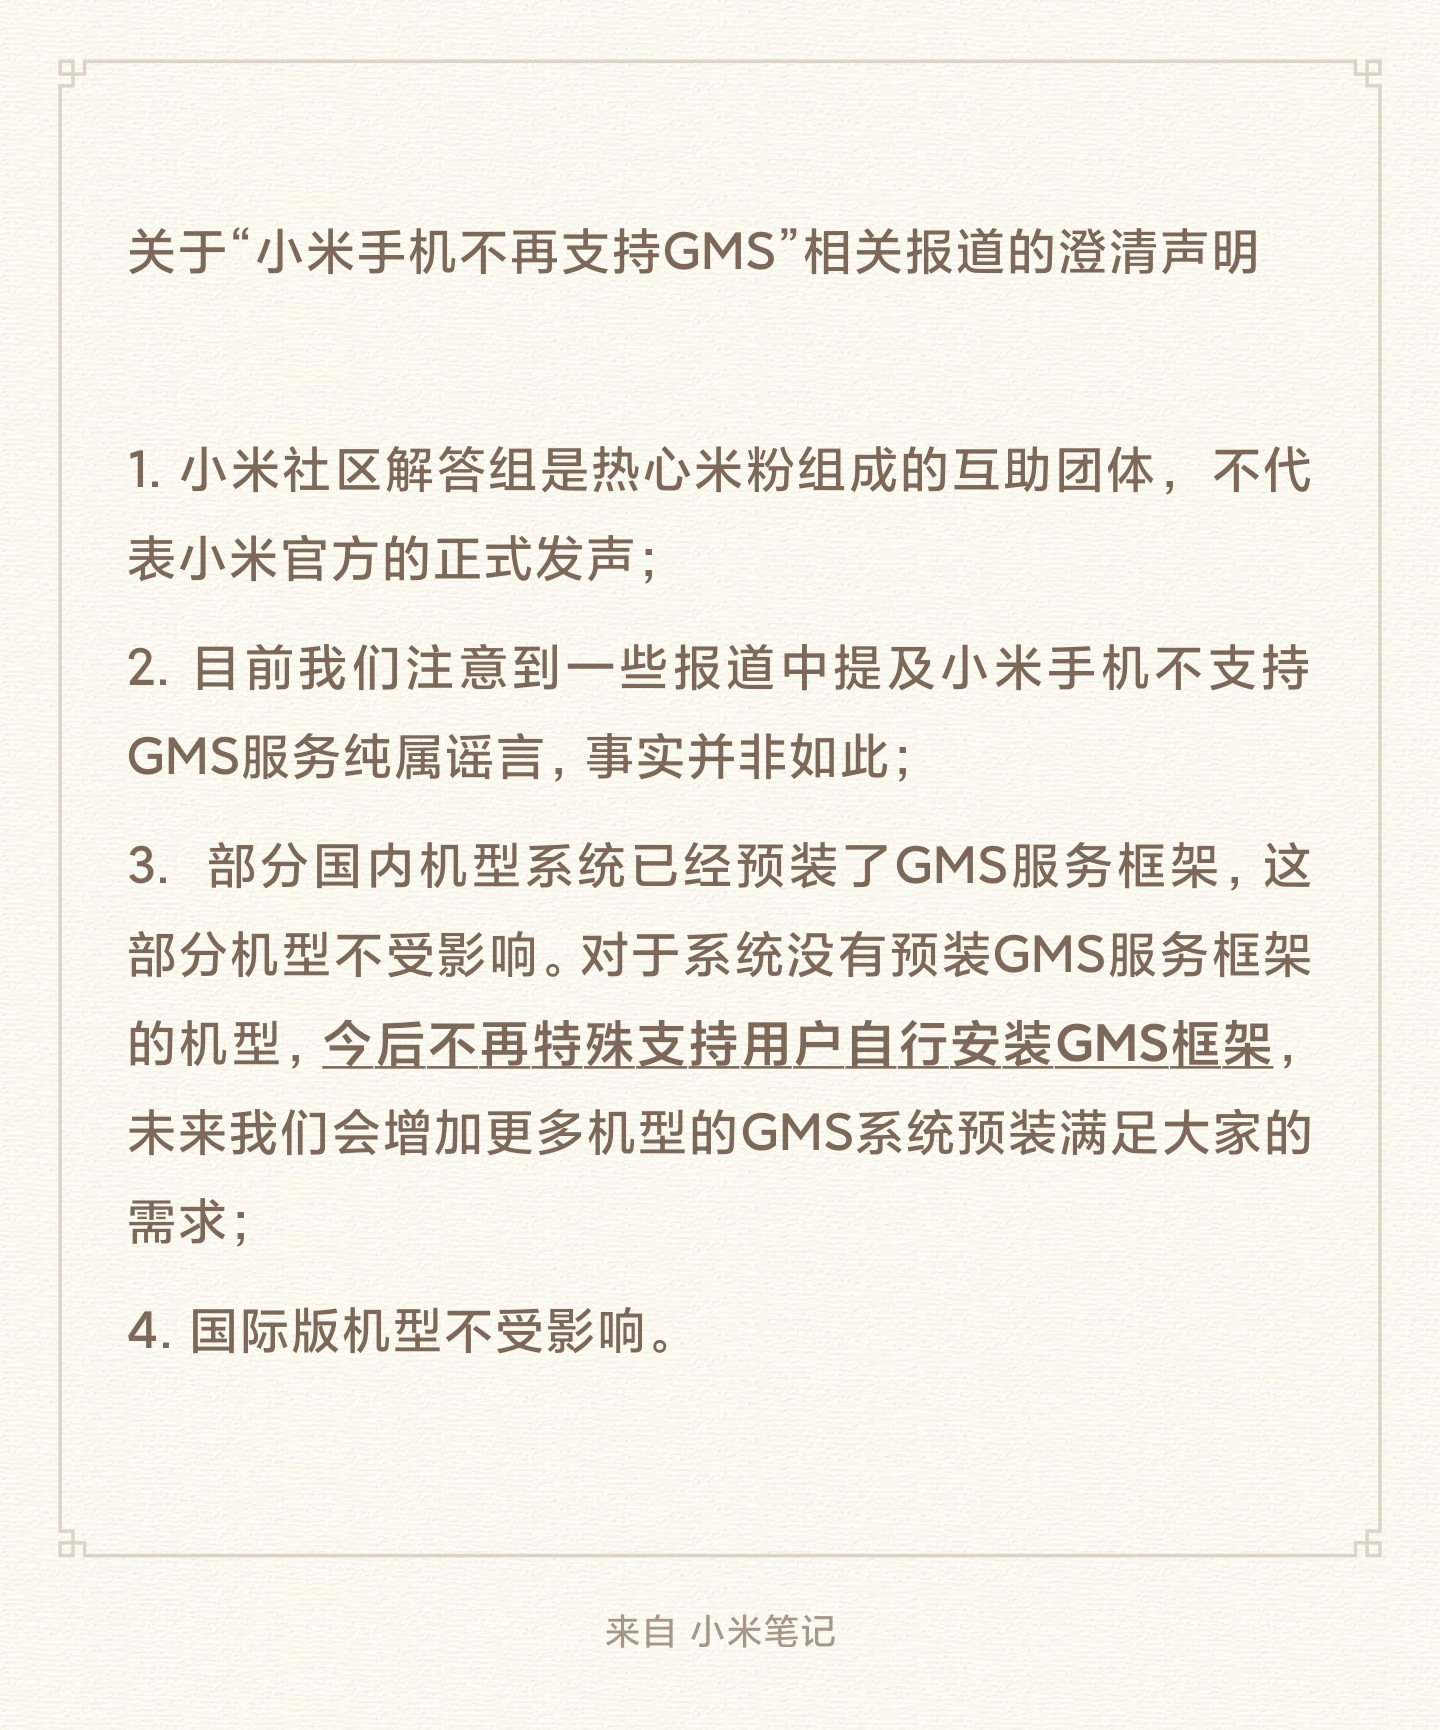 Xiaomi clarifies mobile phones no longer support GMS rumors